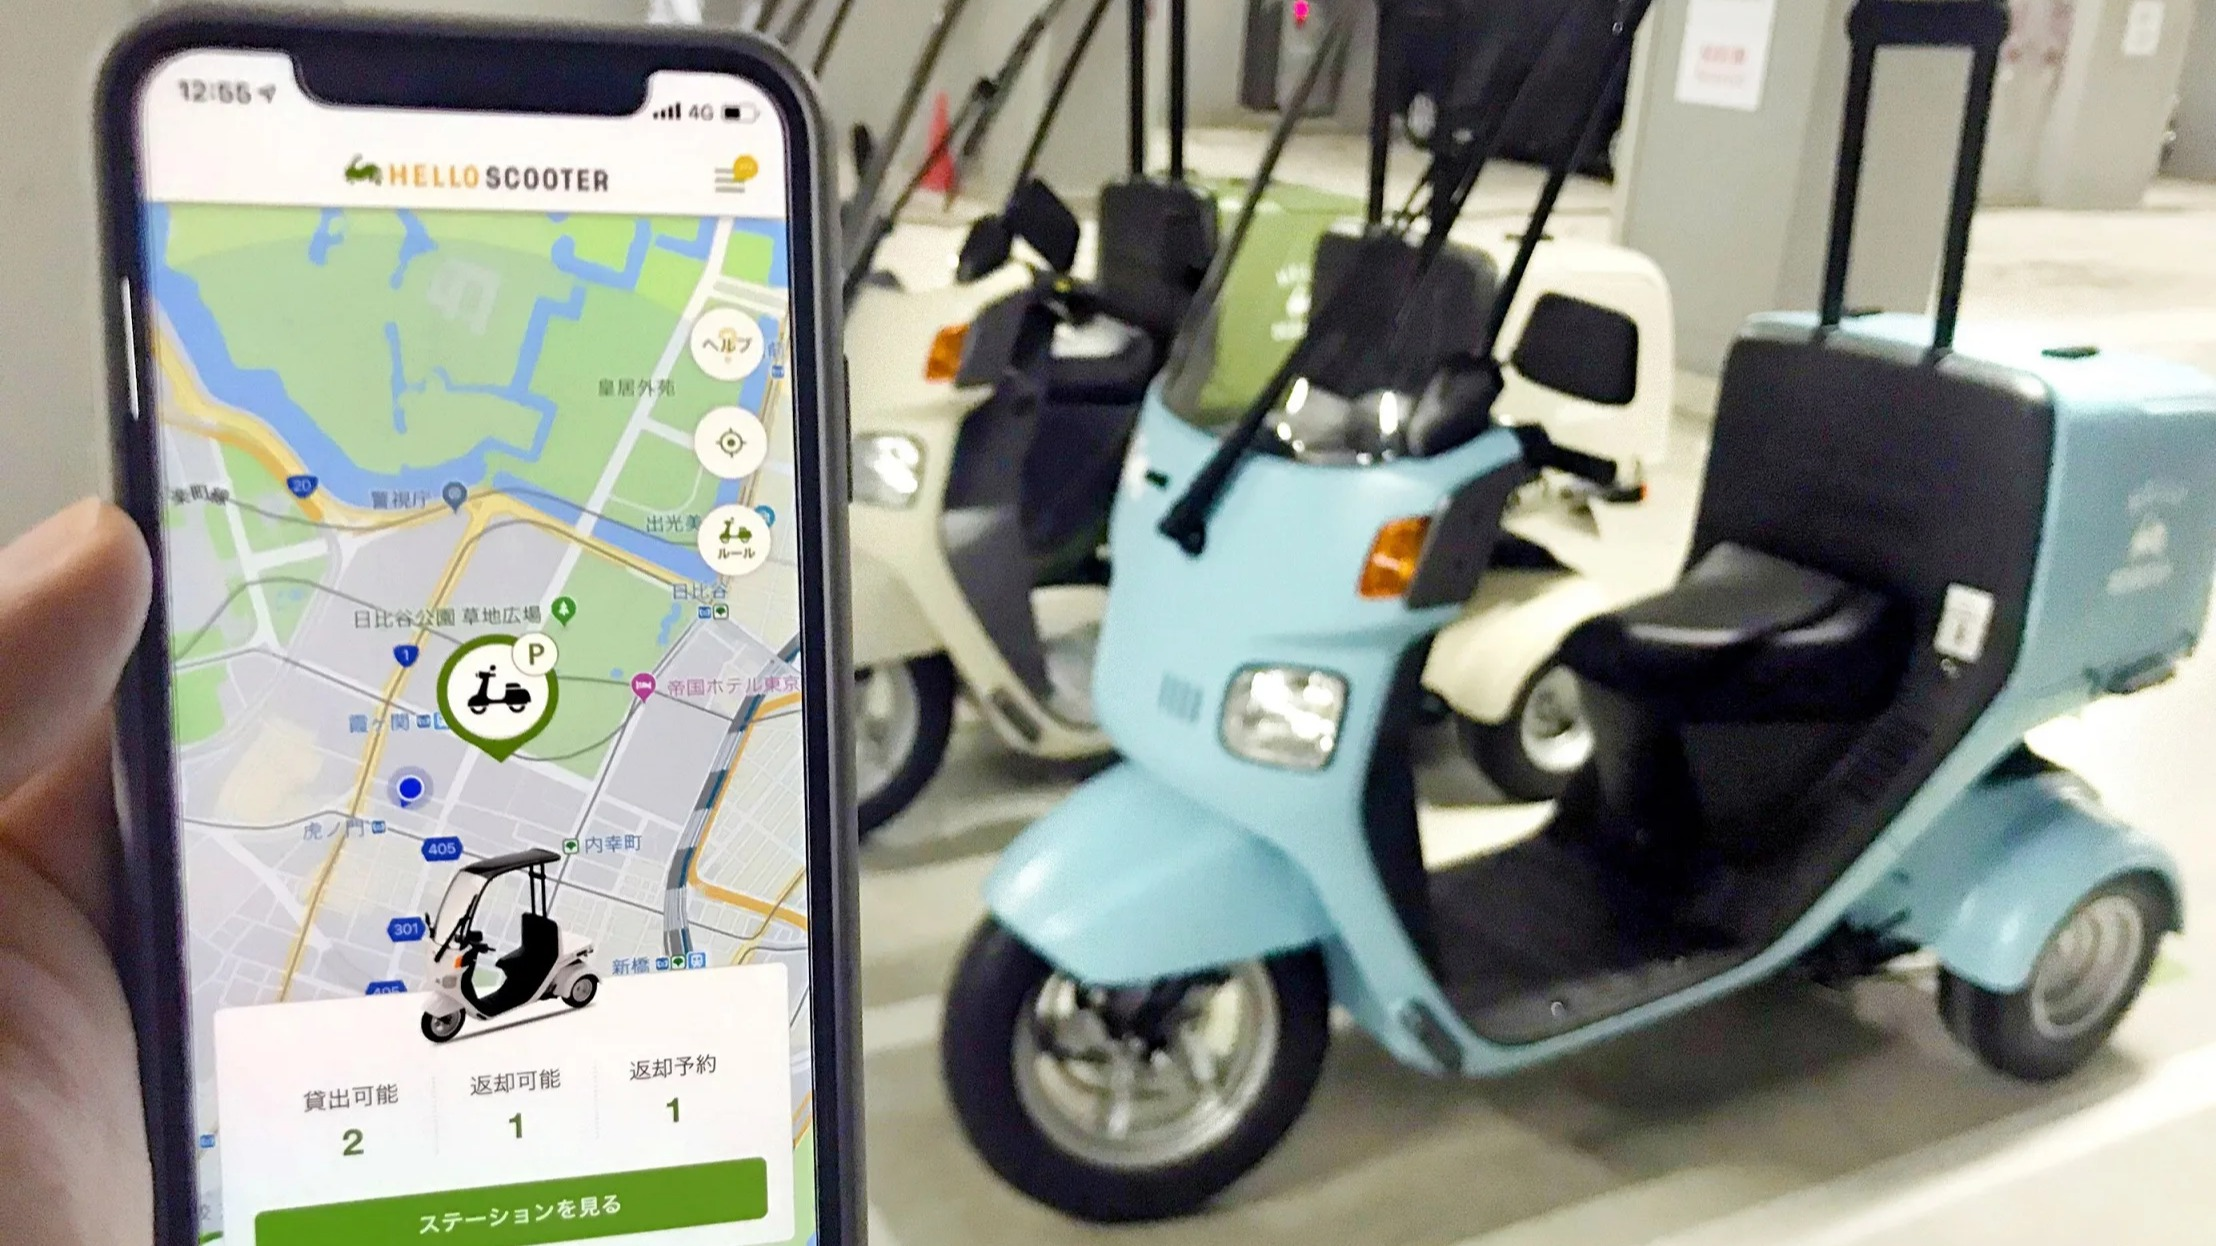 Scooter sharing kicks off in Japan in next stage of sharing